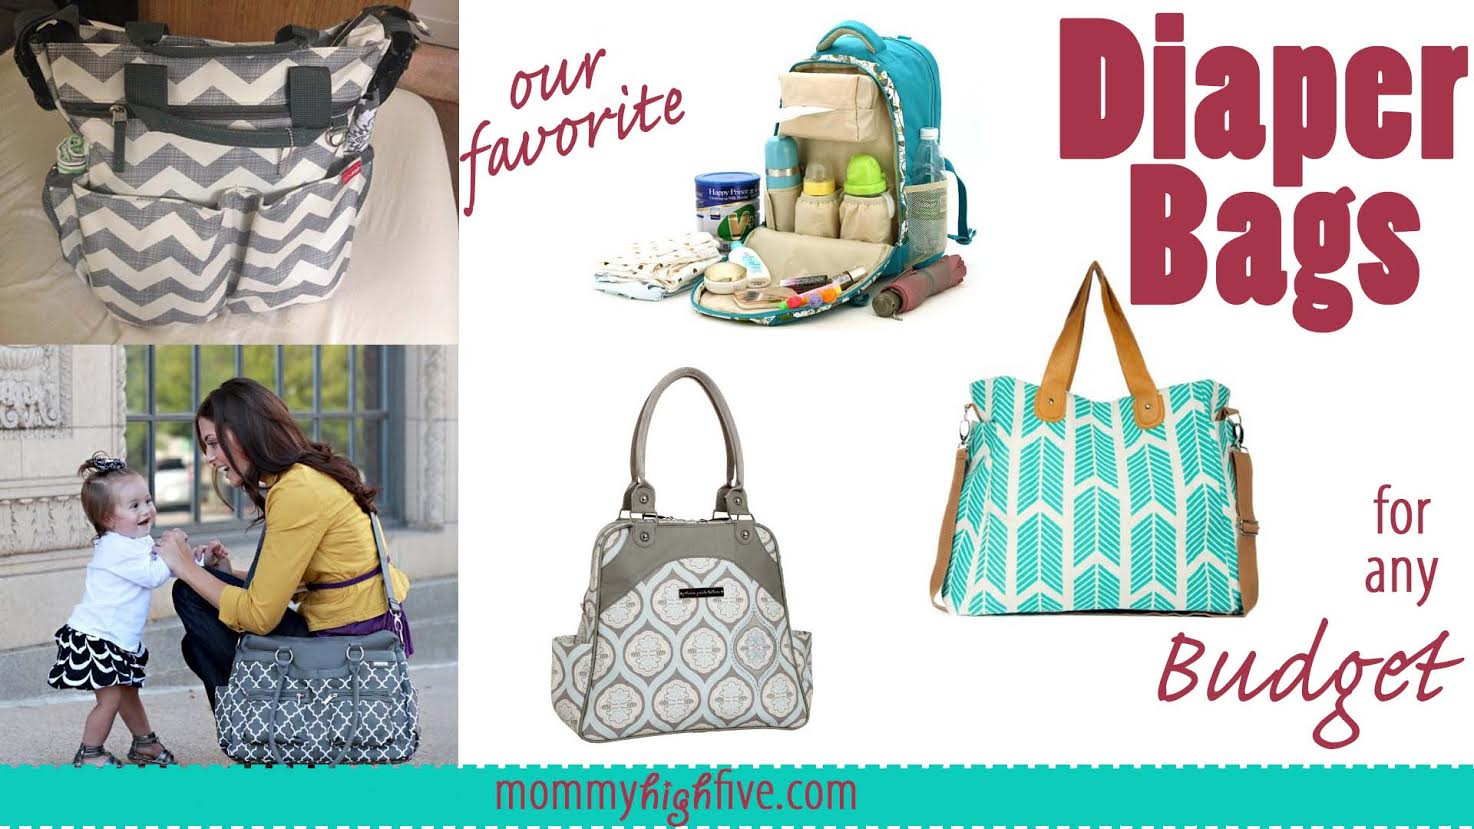 5 Good Designer Diaper Bags for all Budgets